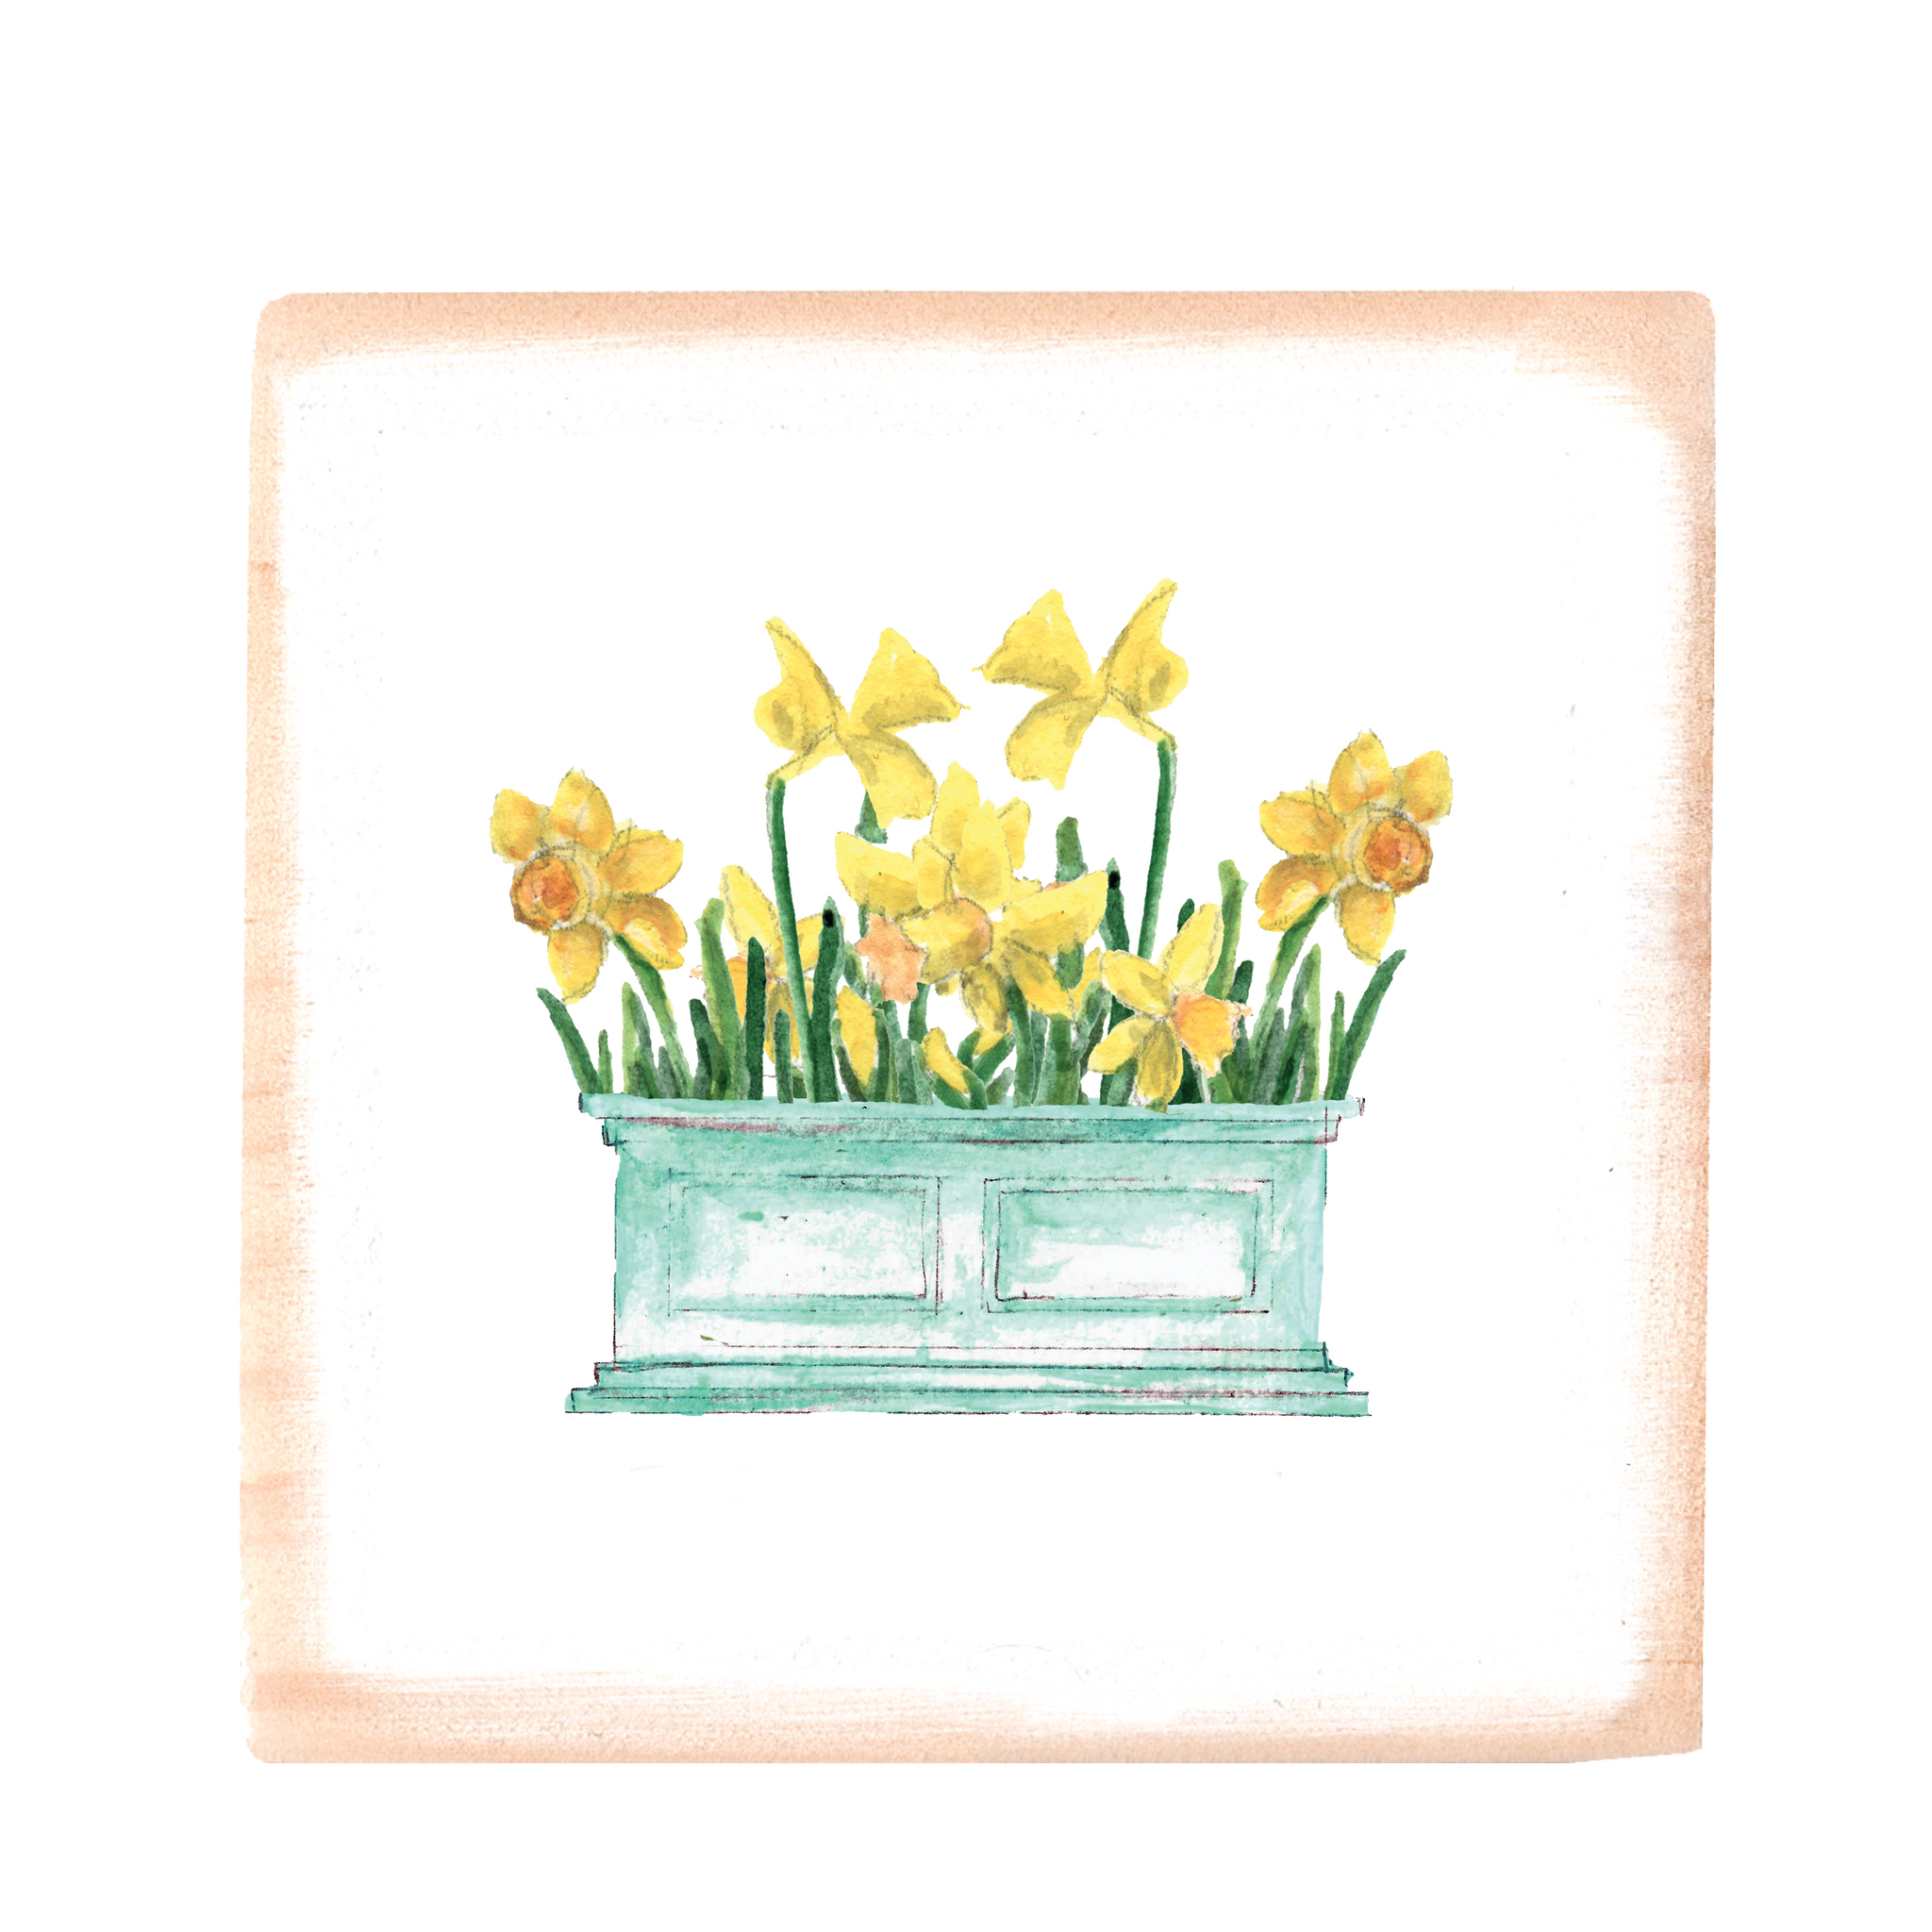 daffodils in flower box